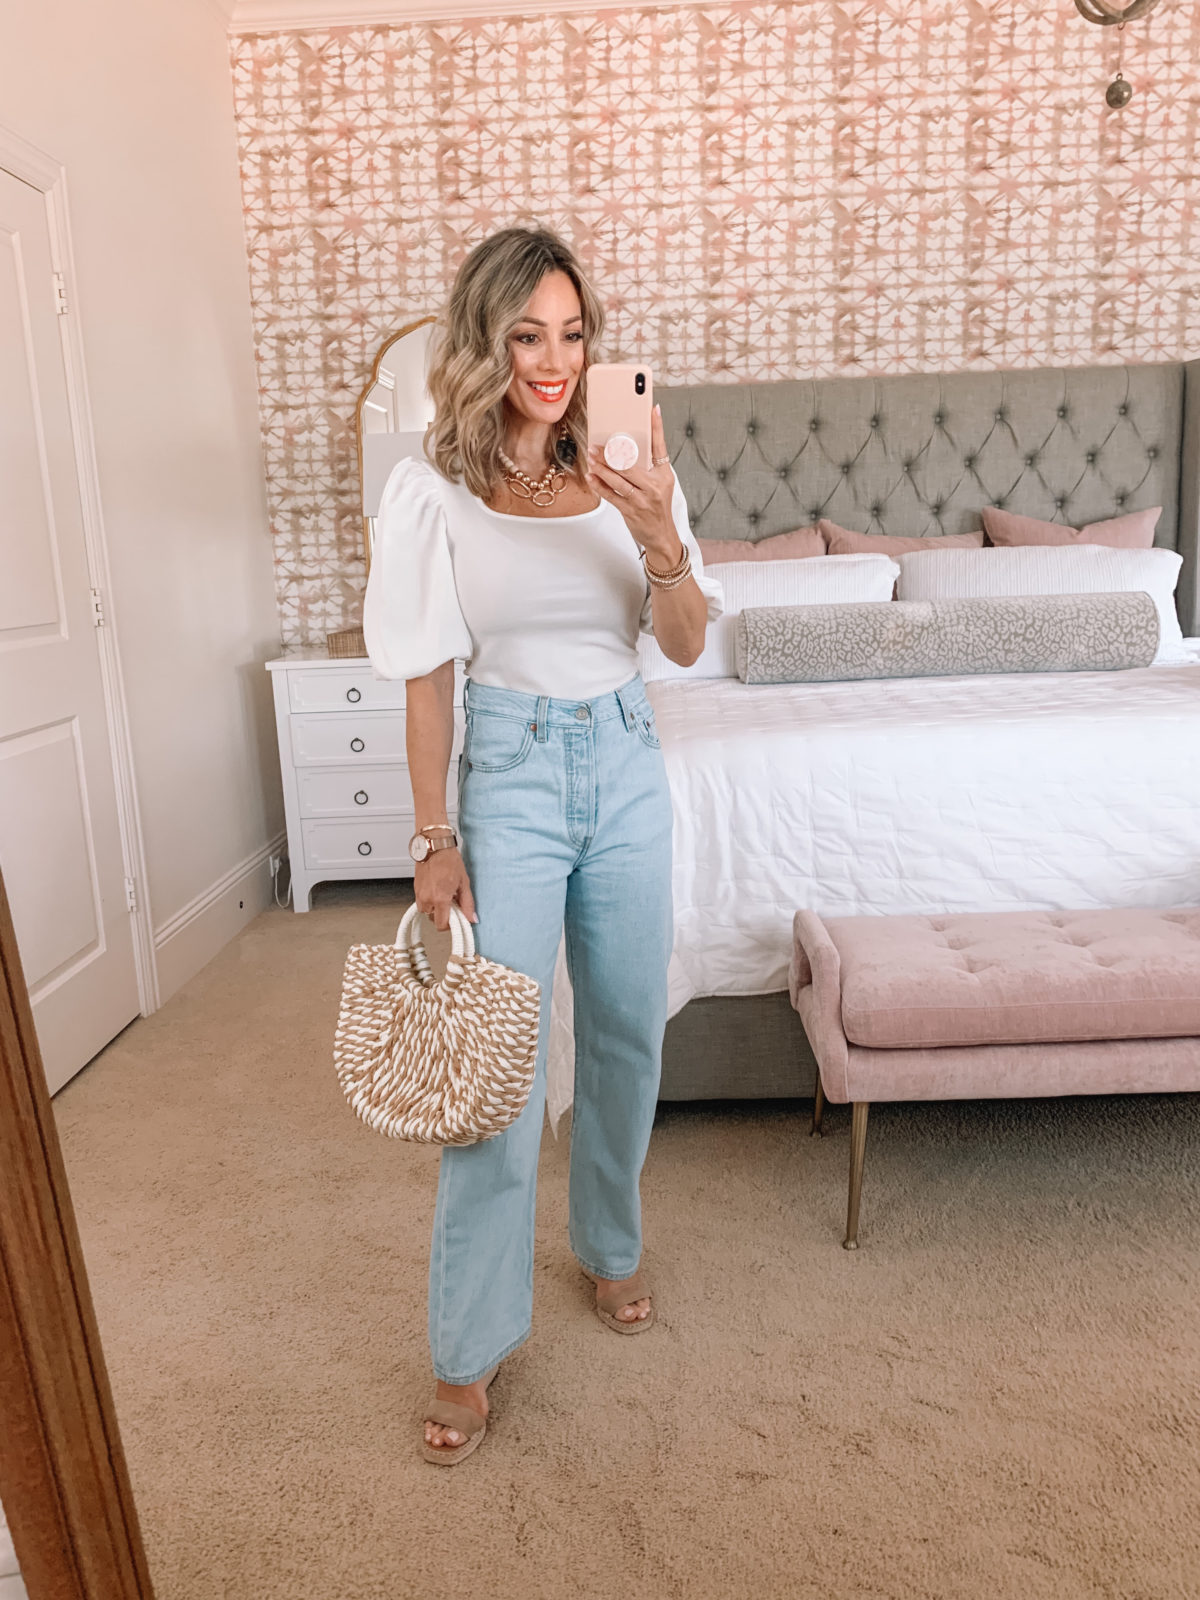 Amazon Fashion Faves, Puff Sleeve Top, Wide Leg Jeans, Wedges, Tote